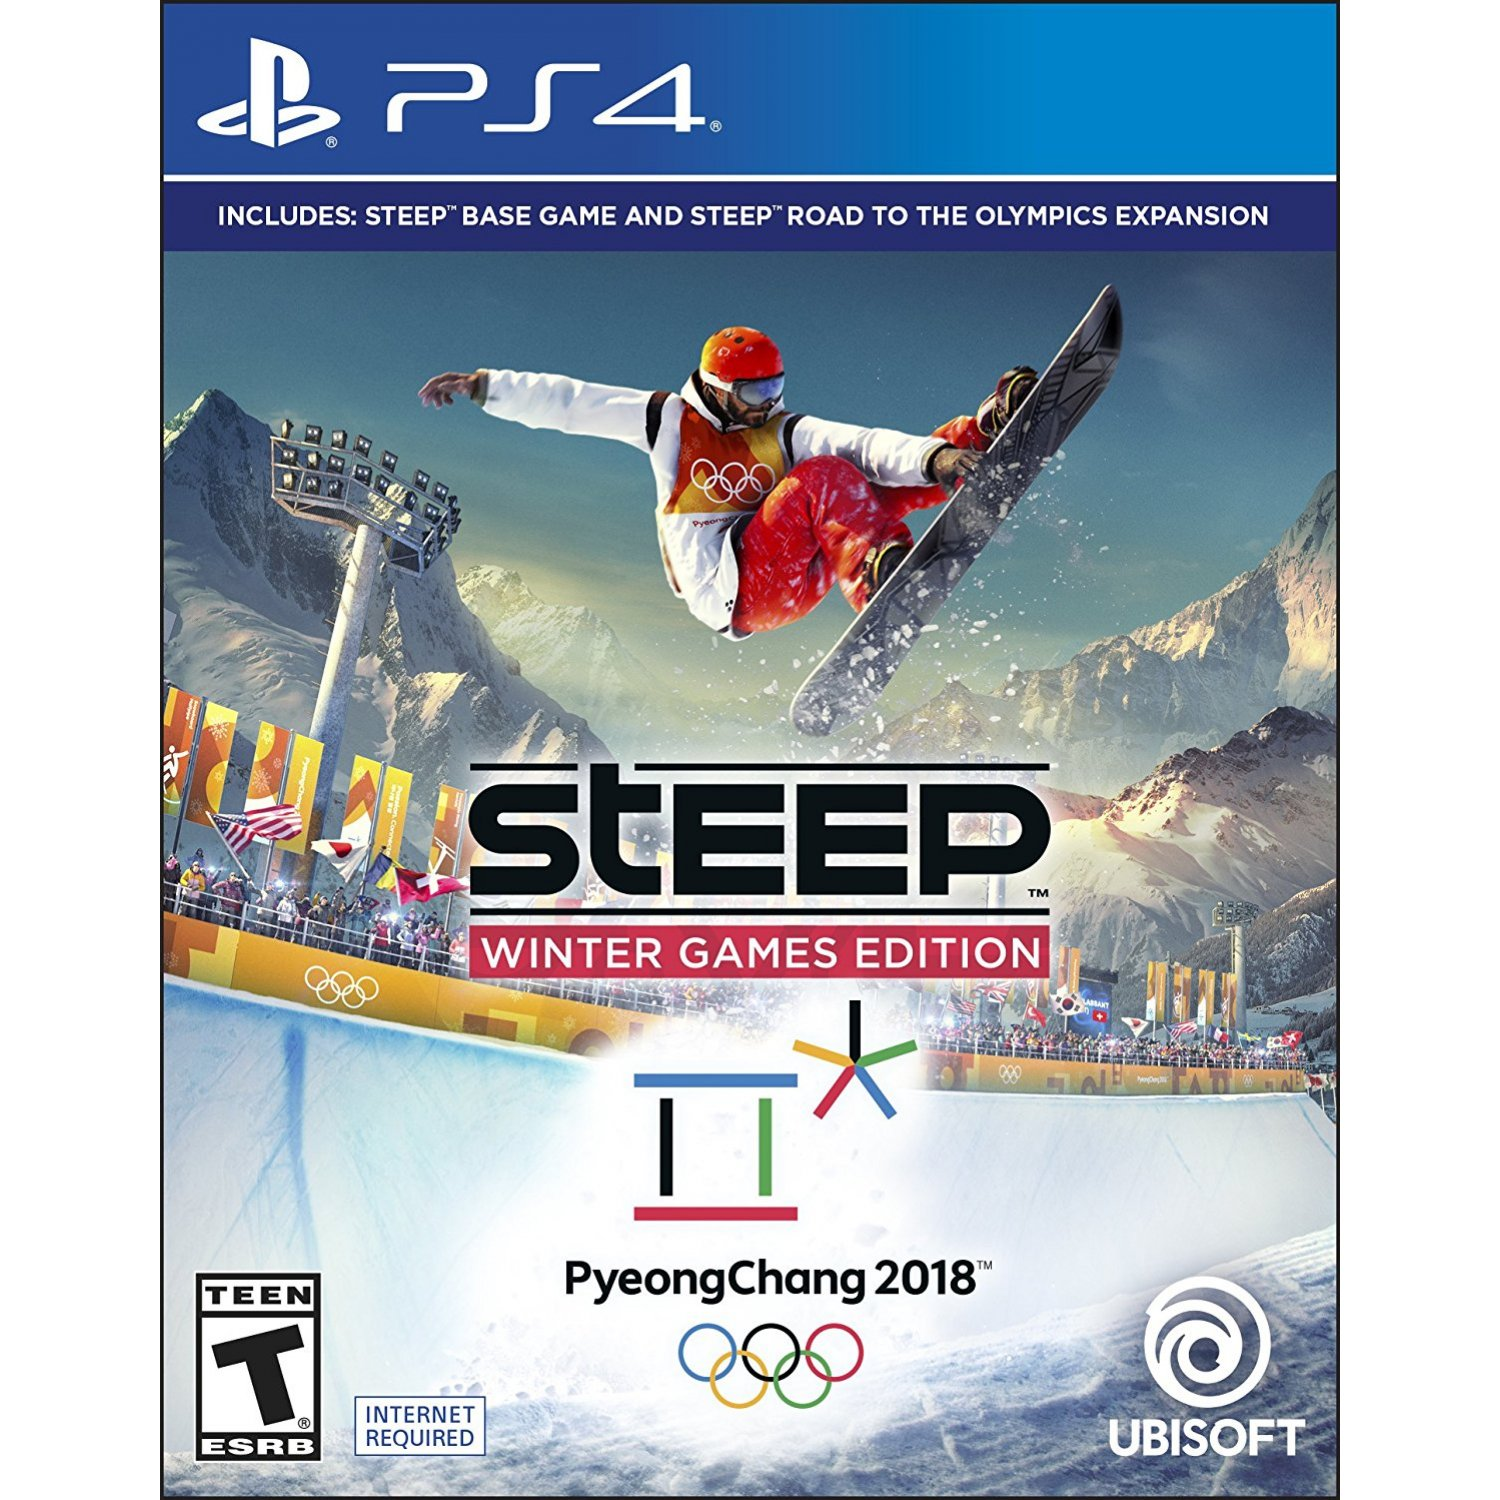 PS4: STEEP Winter Games Edition (R3)